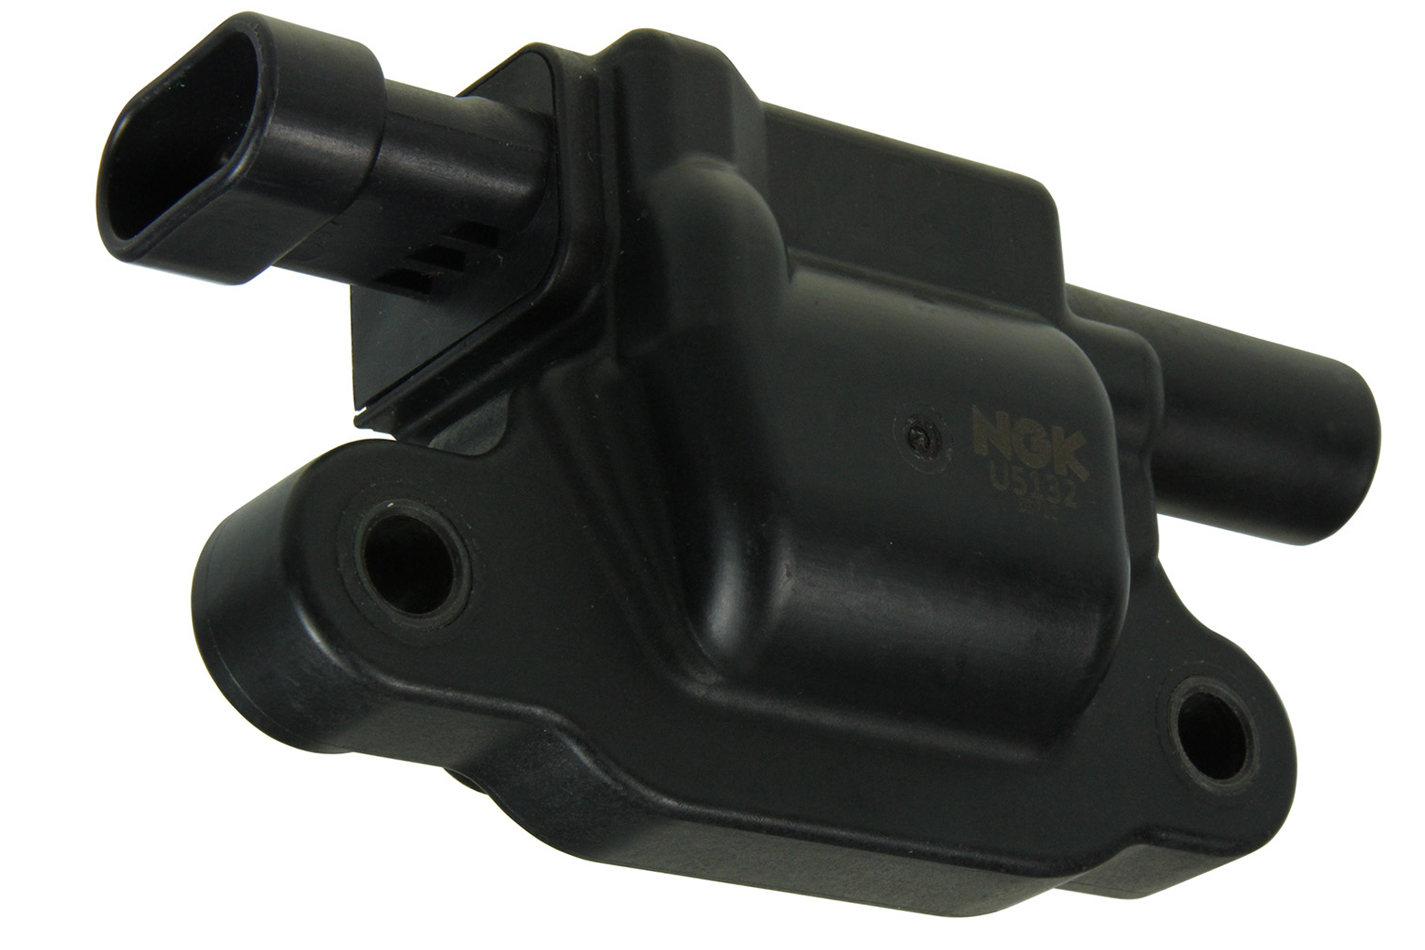 NGK U5132 Ignition Coil Pack, Coil-Near-Plug, OE Specs, Distributorless Ignition, Black, Each